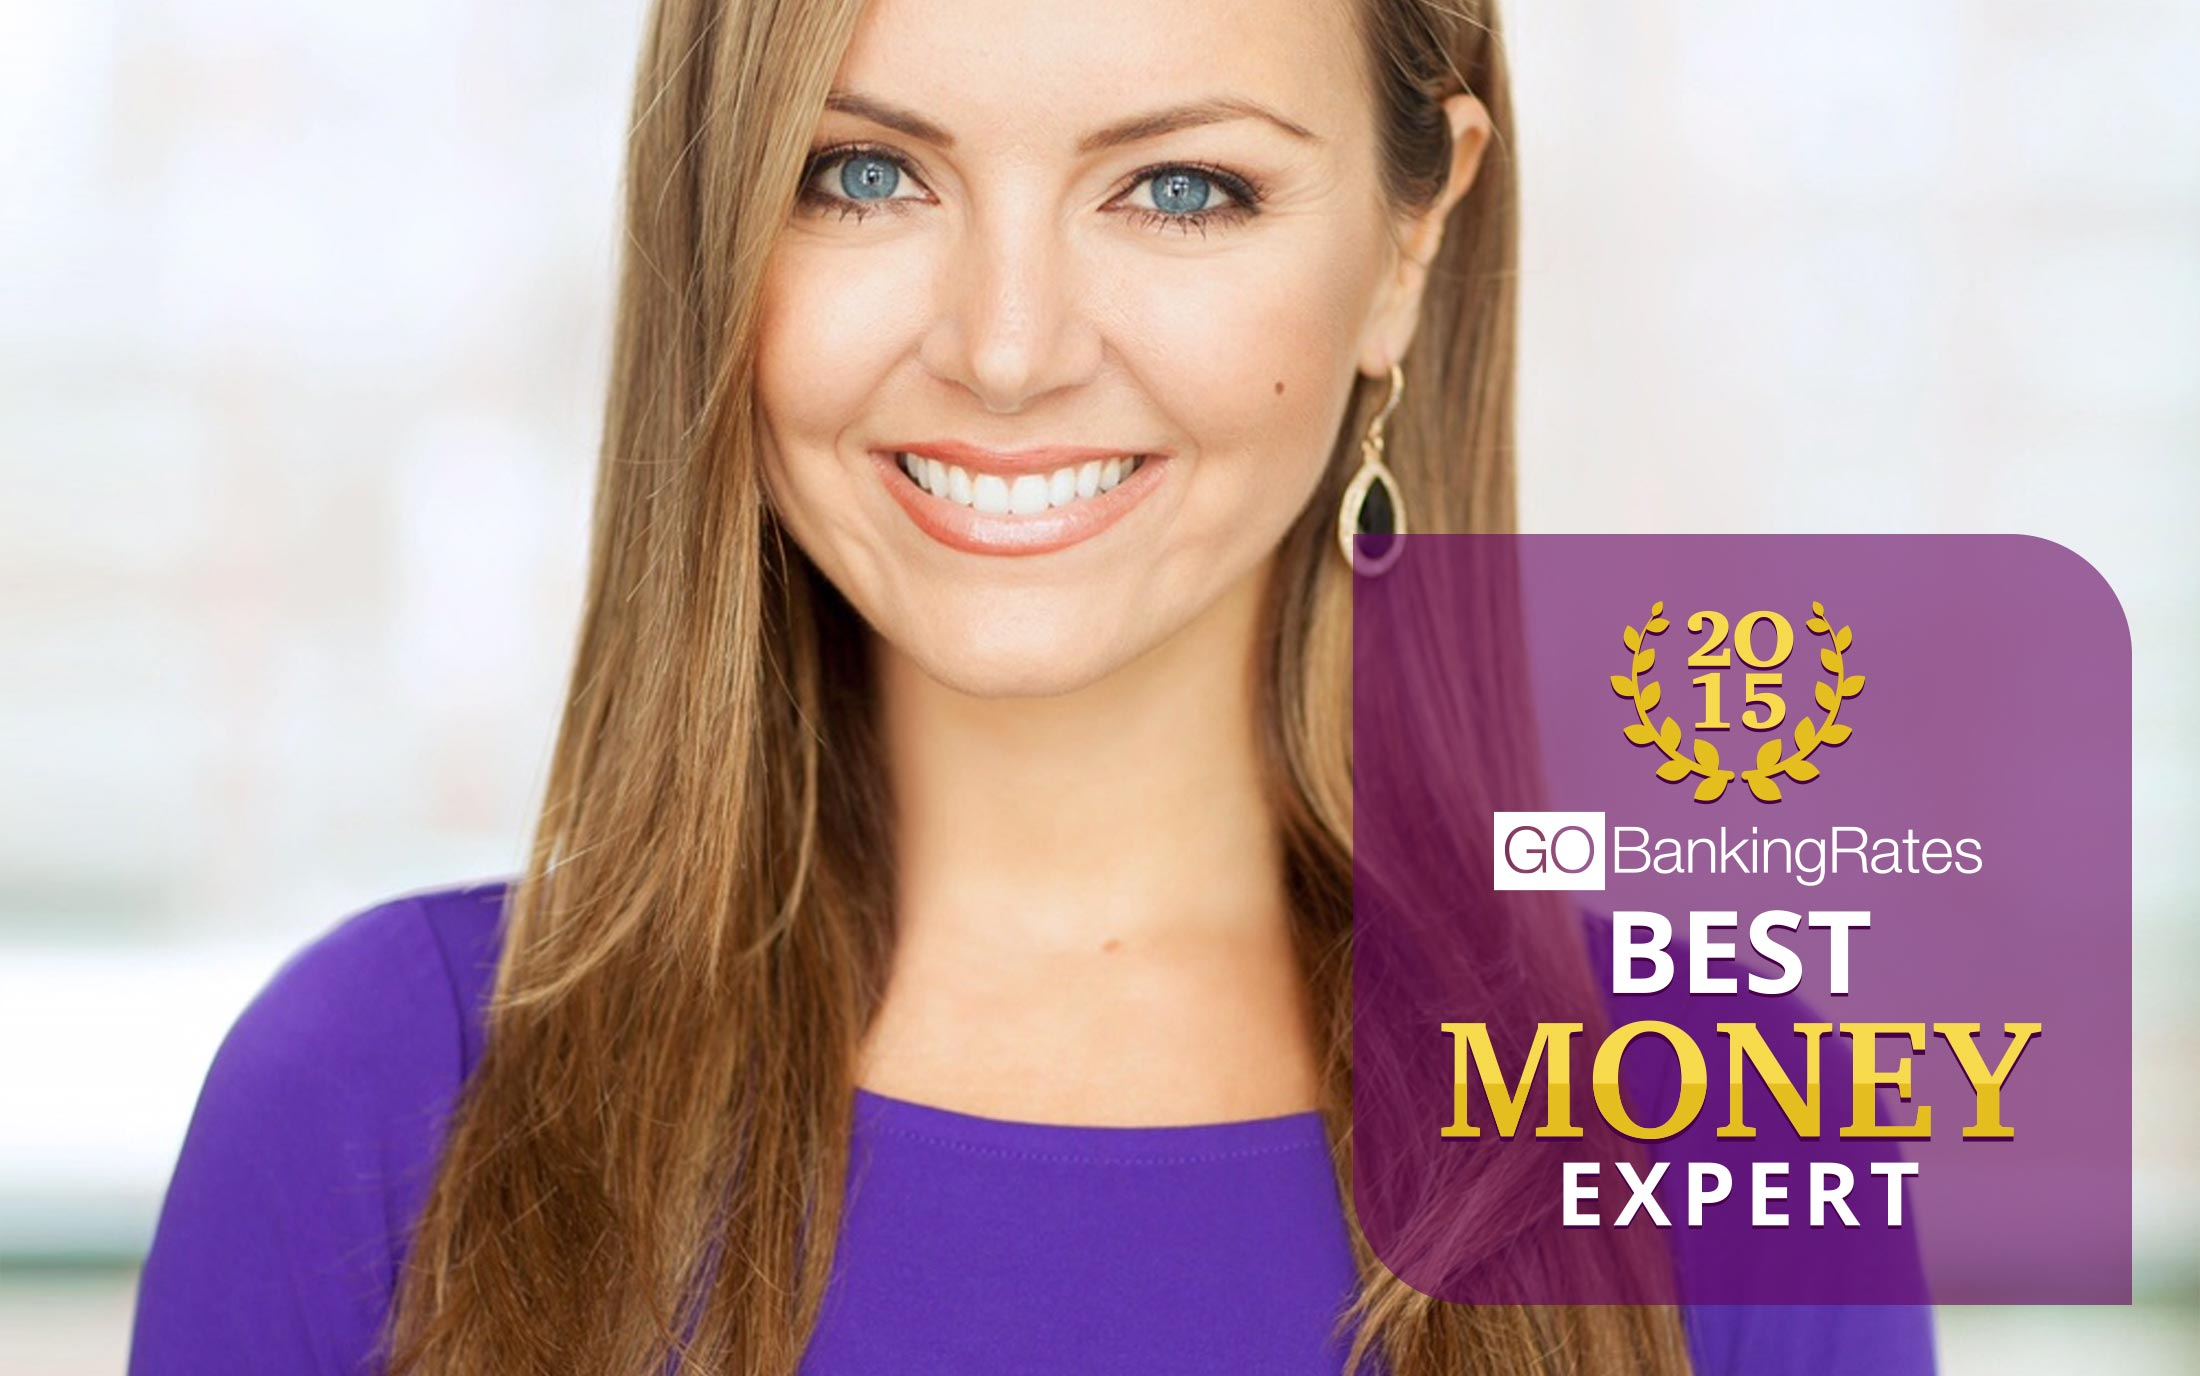 nicole lapin best money expert 2015